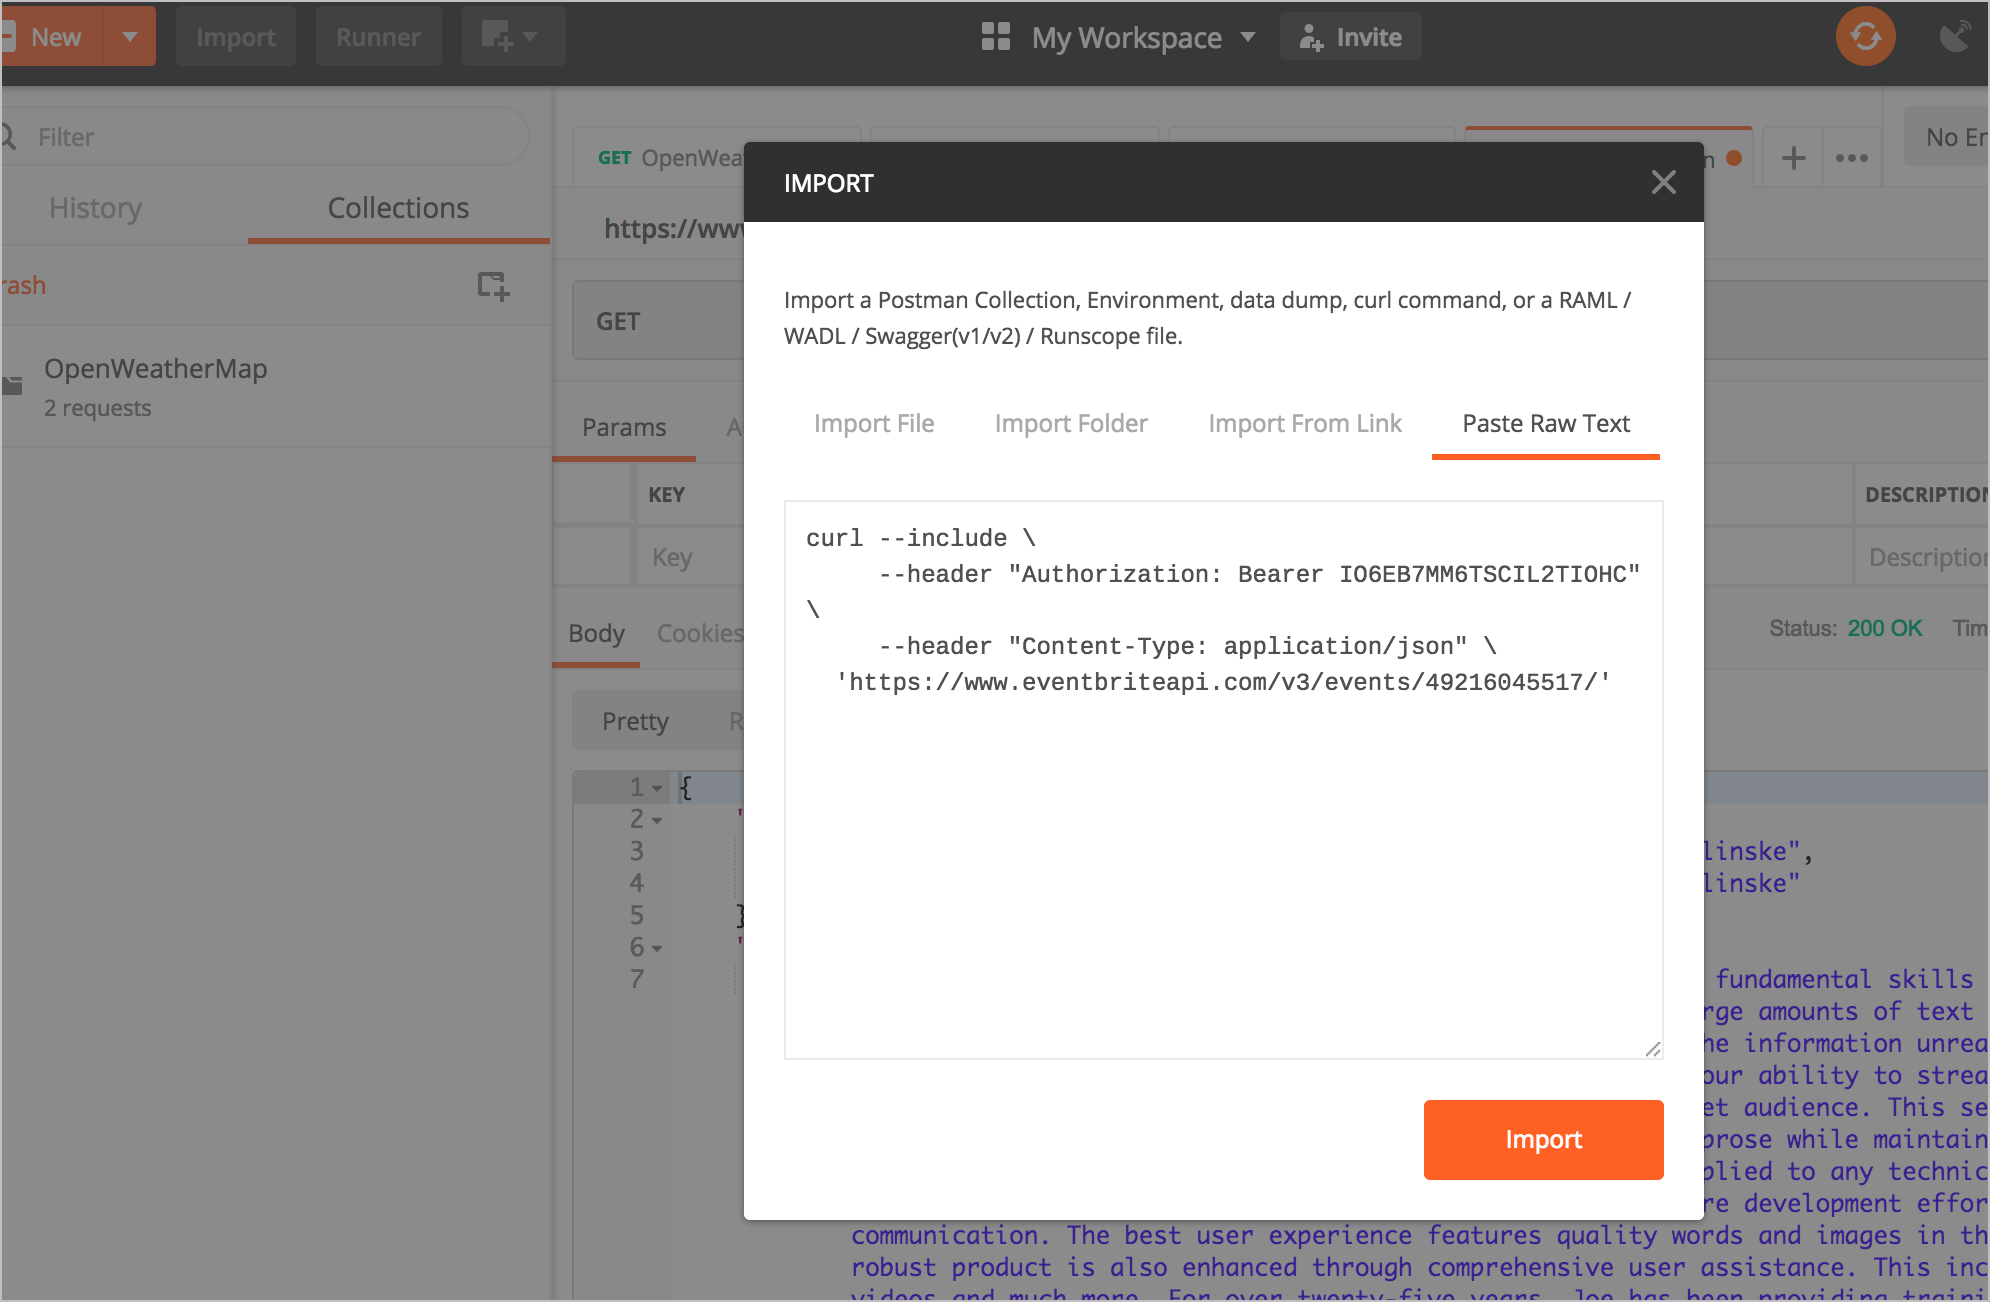 Pasting curl into Postman